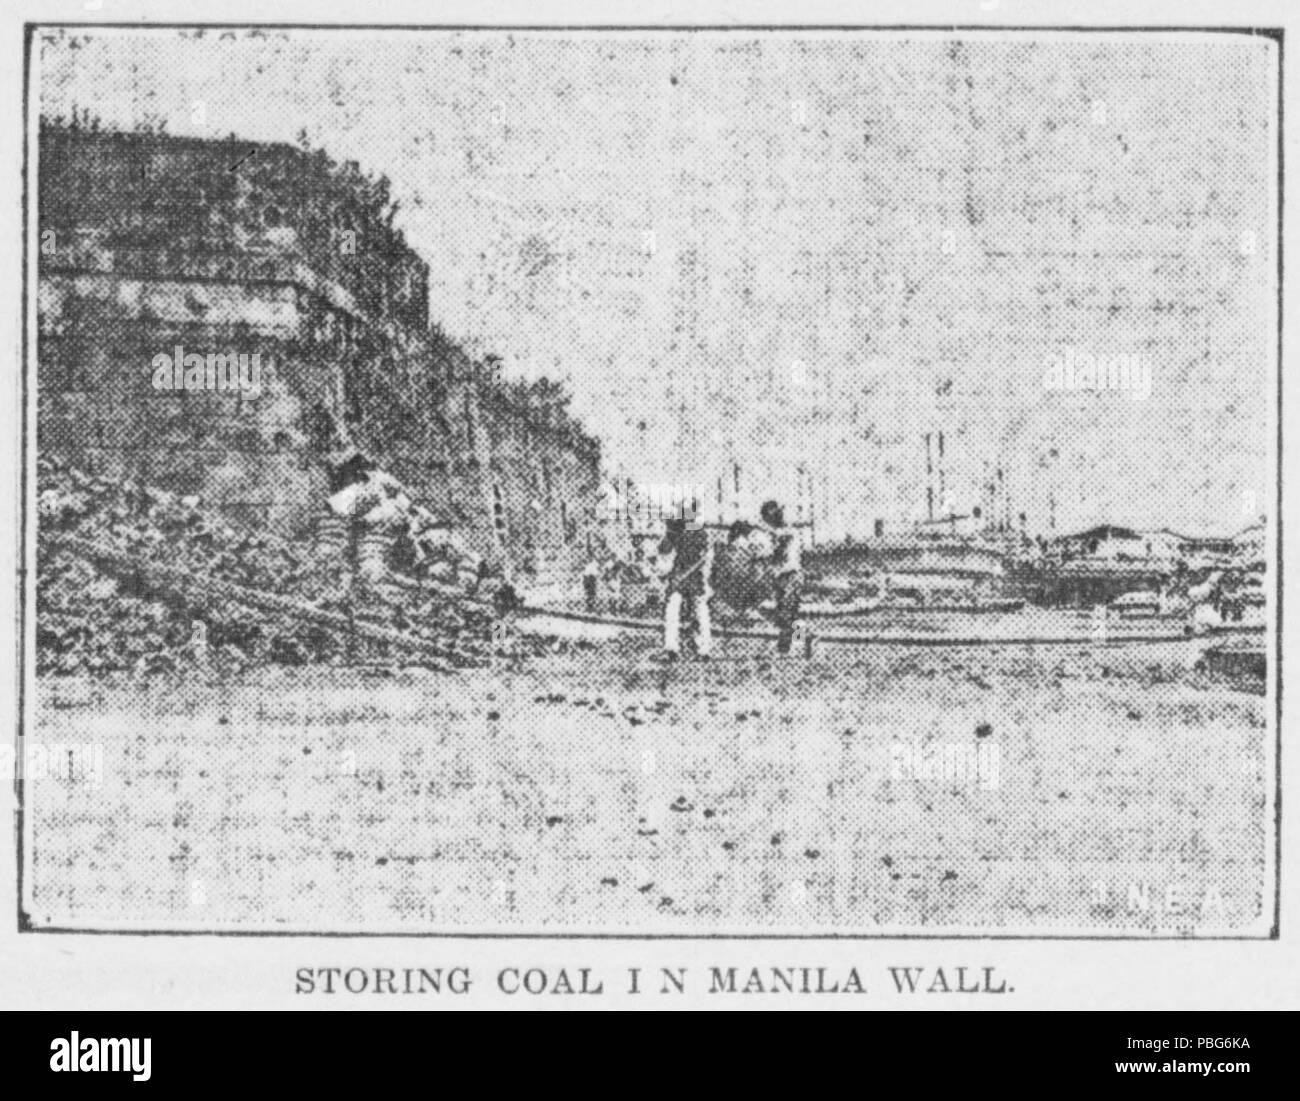 1577 Storing coal in Manila Wall - Stock Image